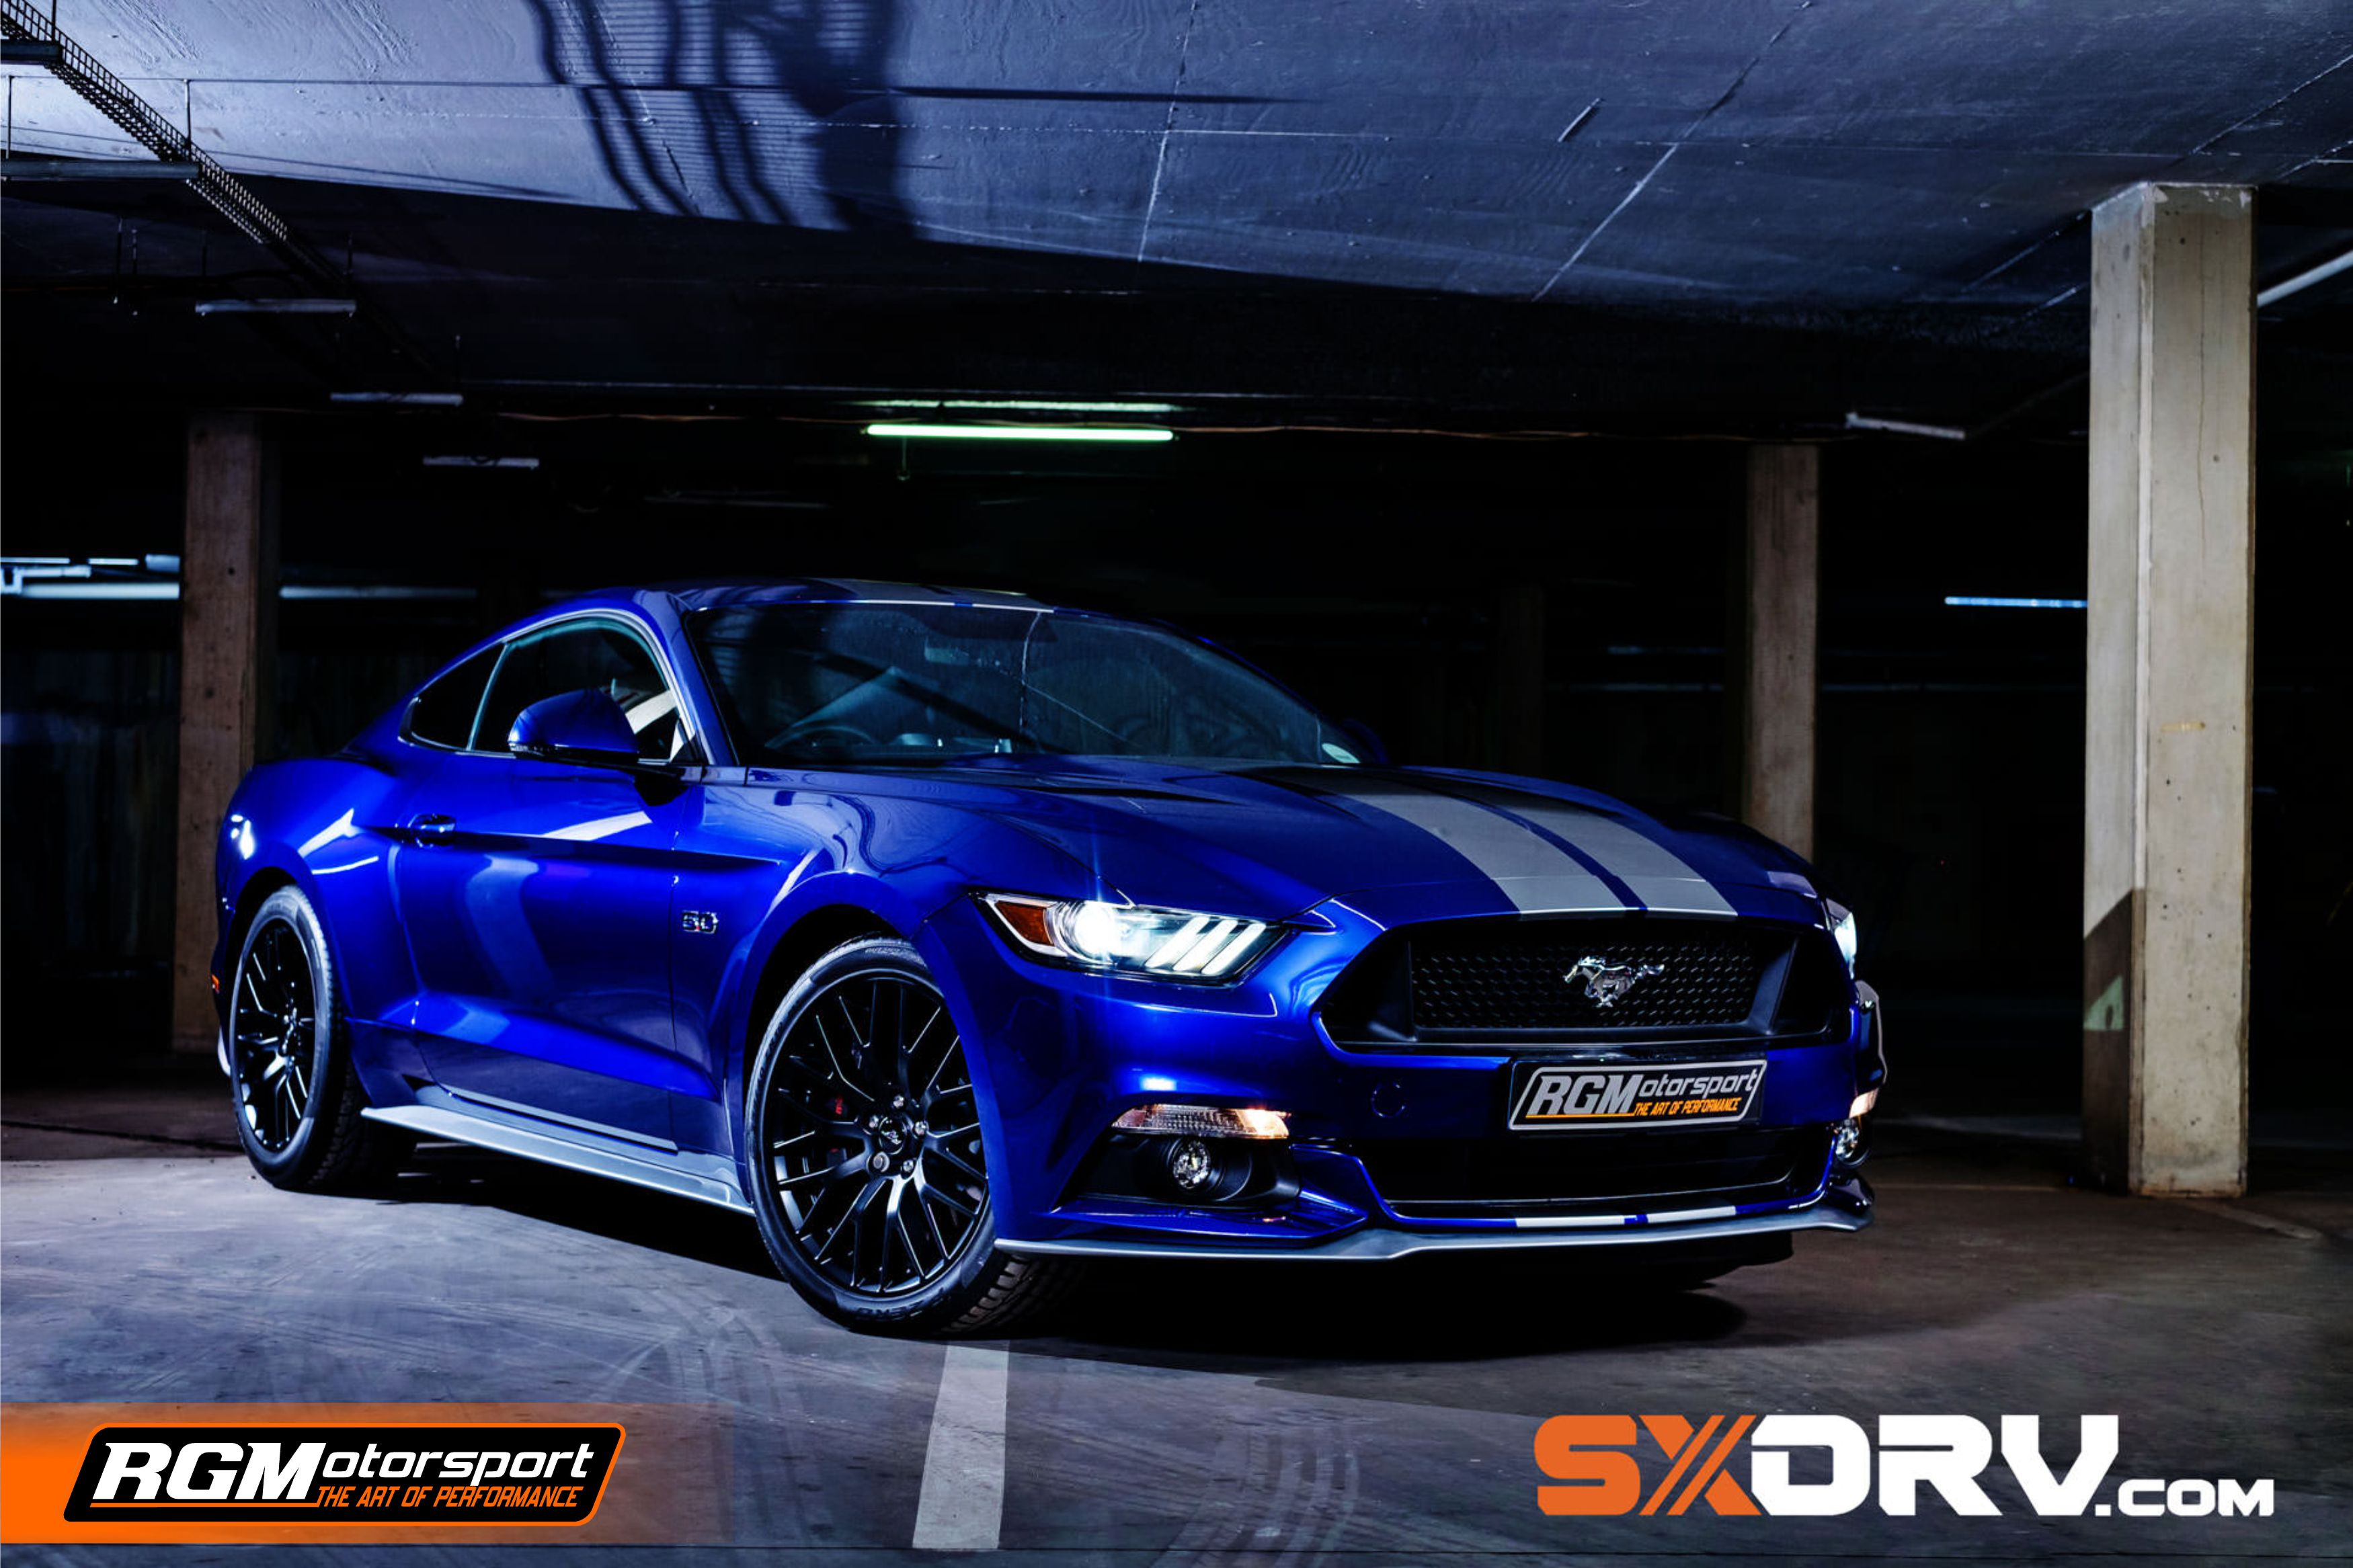 RGM FORD MUSTANG WALLPAPER 1